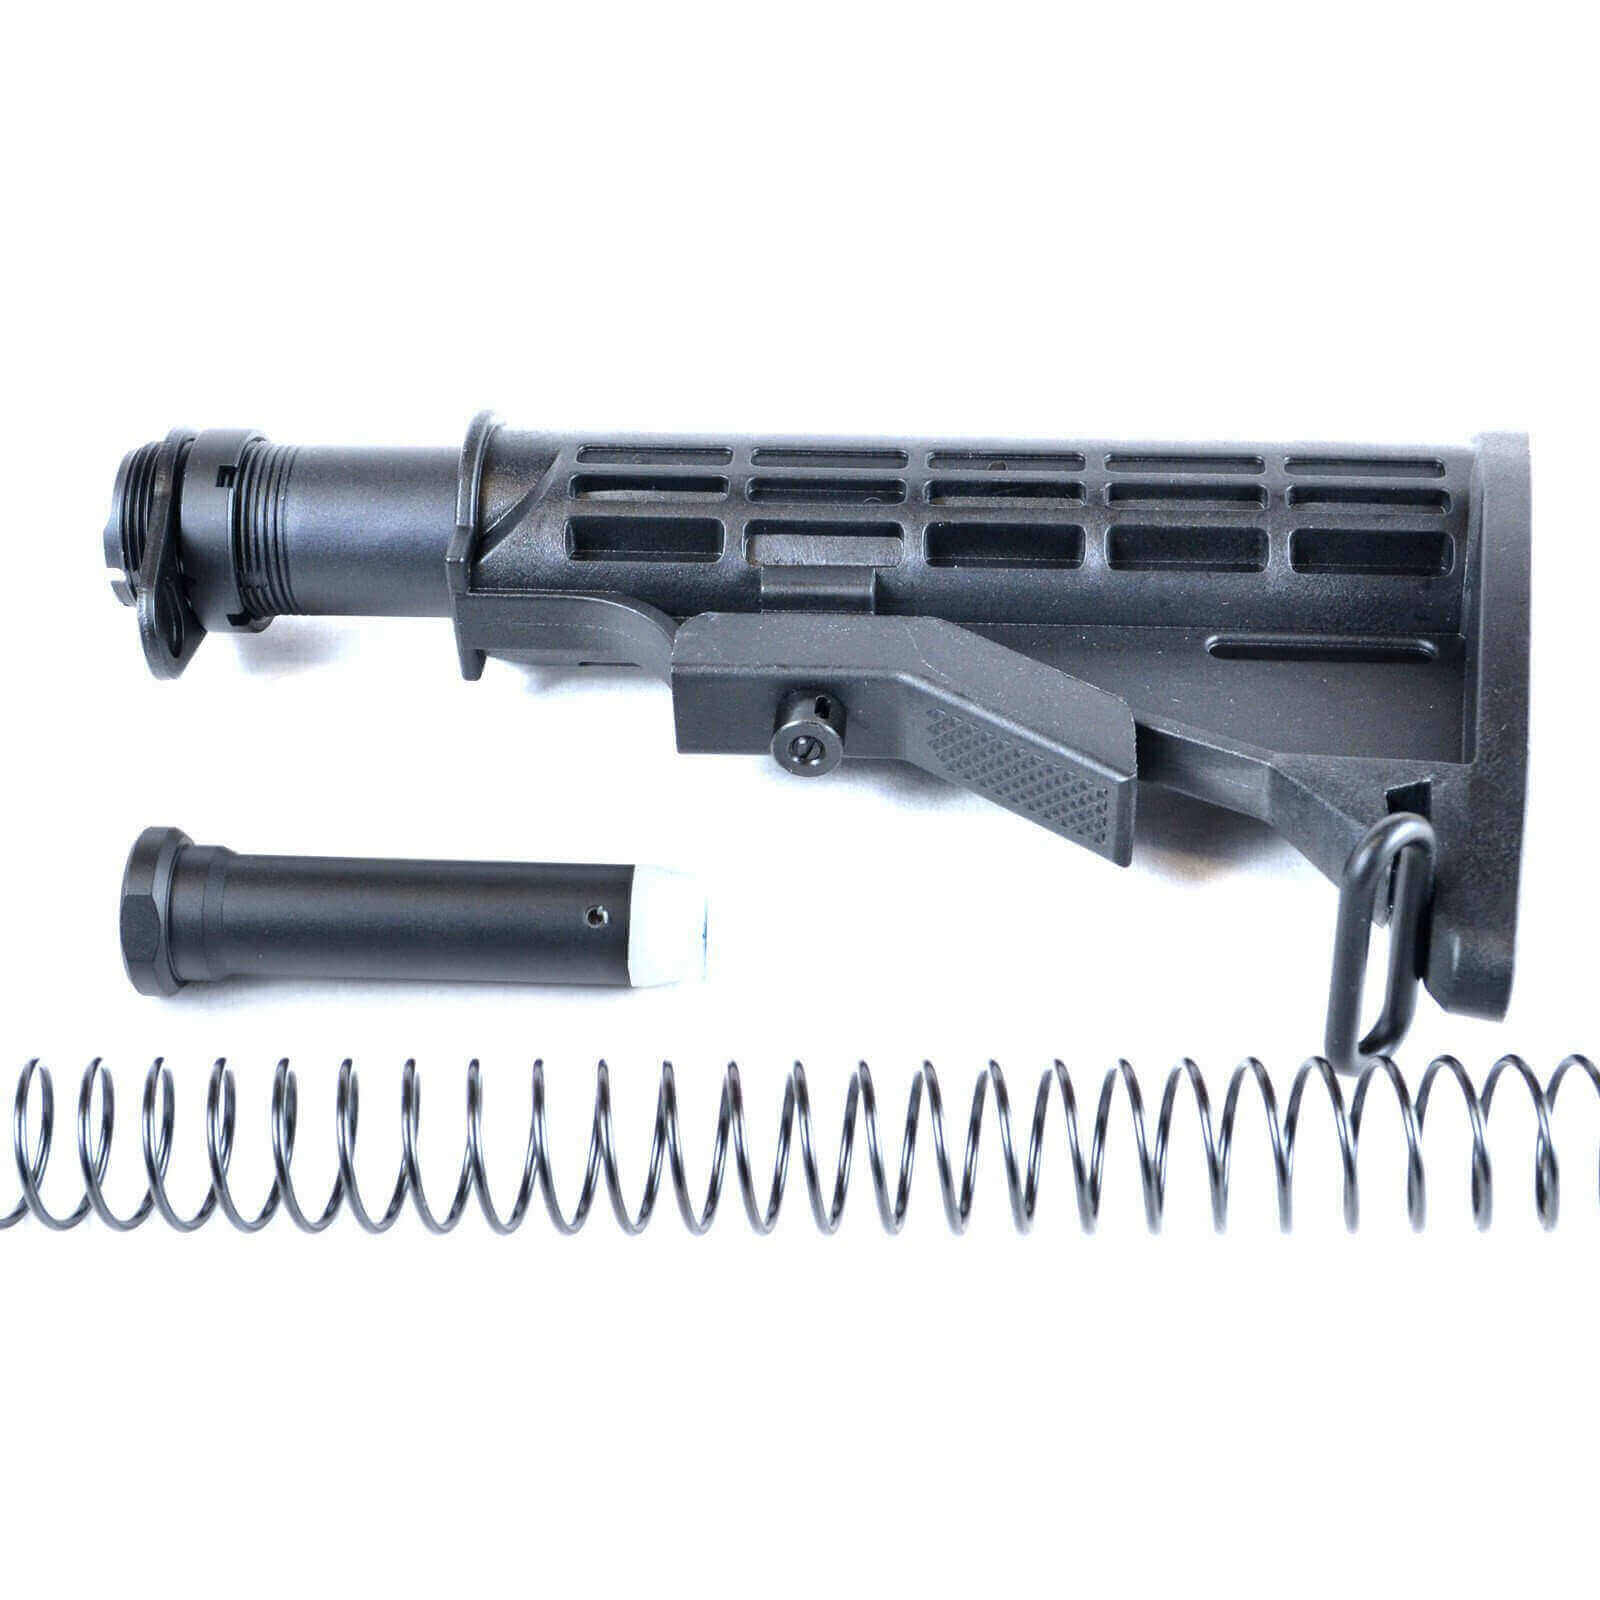 AT3™ Mil-Spec AR-15 Buttstock Kit | AR-15 Parts | AT3 Tactical